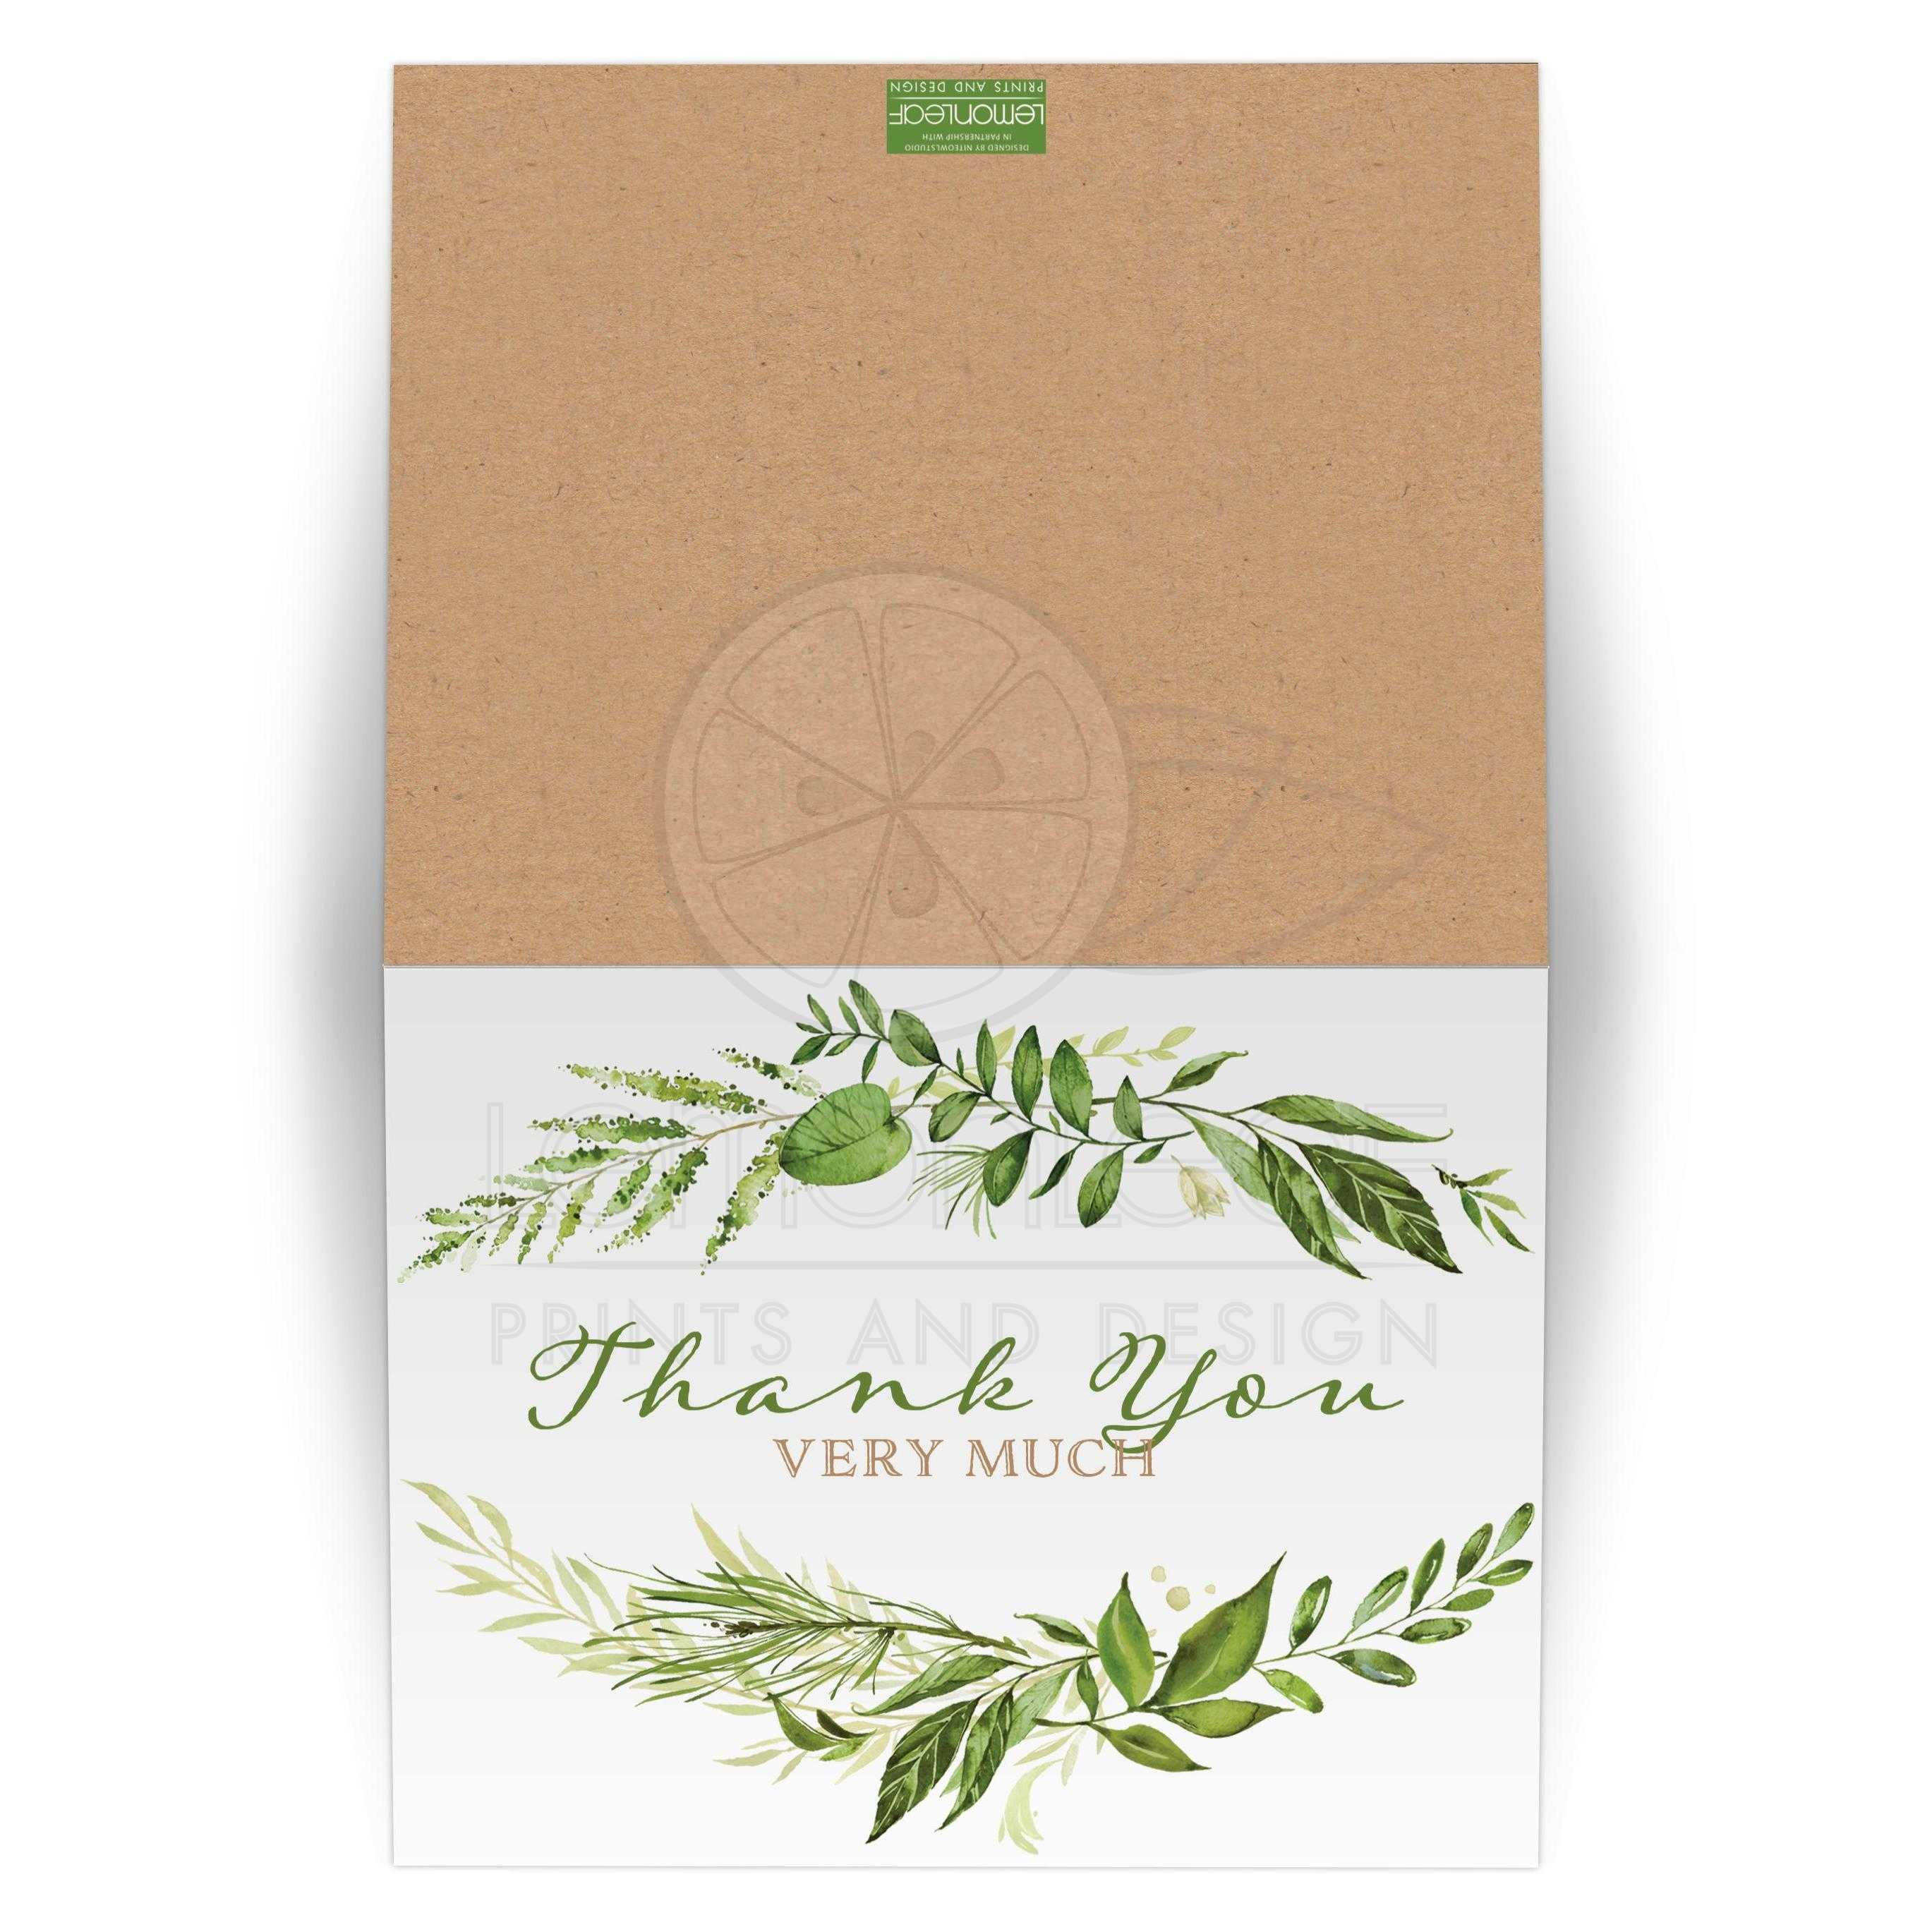 Greenery Wedding Thank You Card With Orted Green Watercolor Foliage Leaves Stems And Boughs